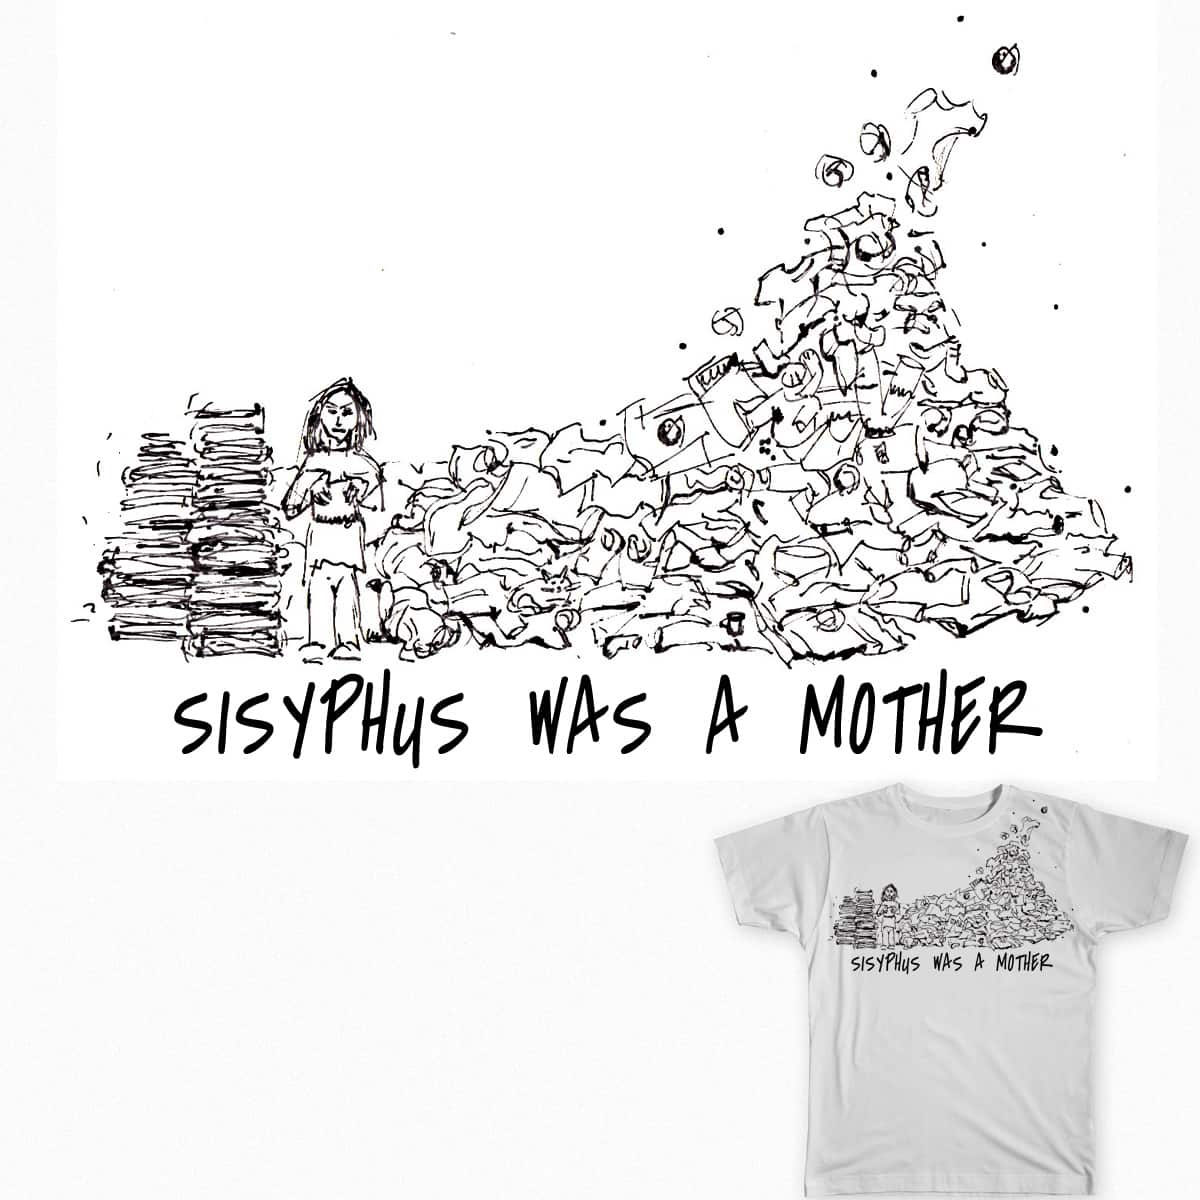 Sisyphus was a mother by gifgrrl on Threadless